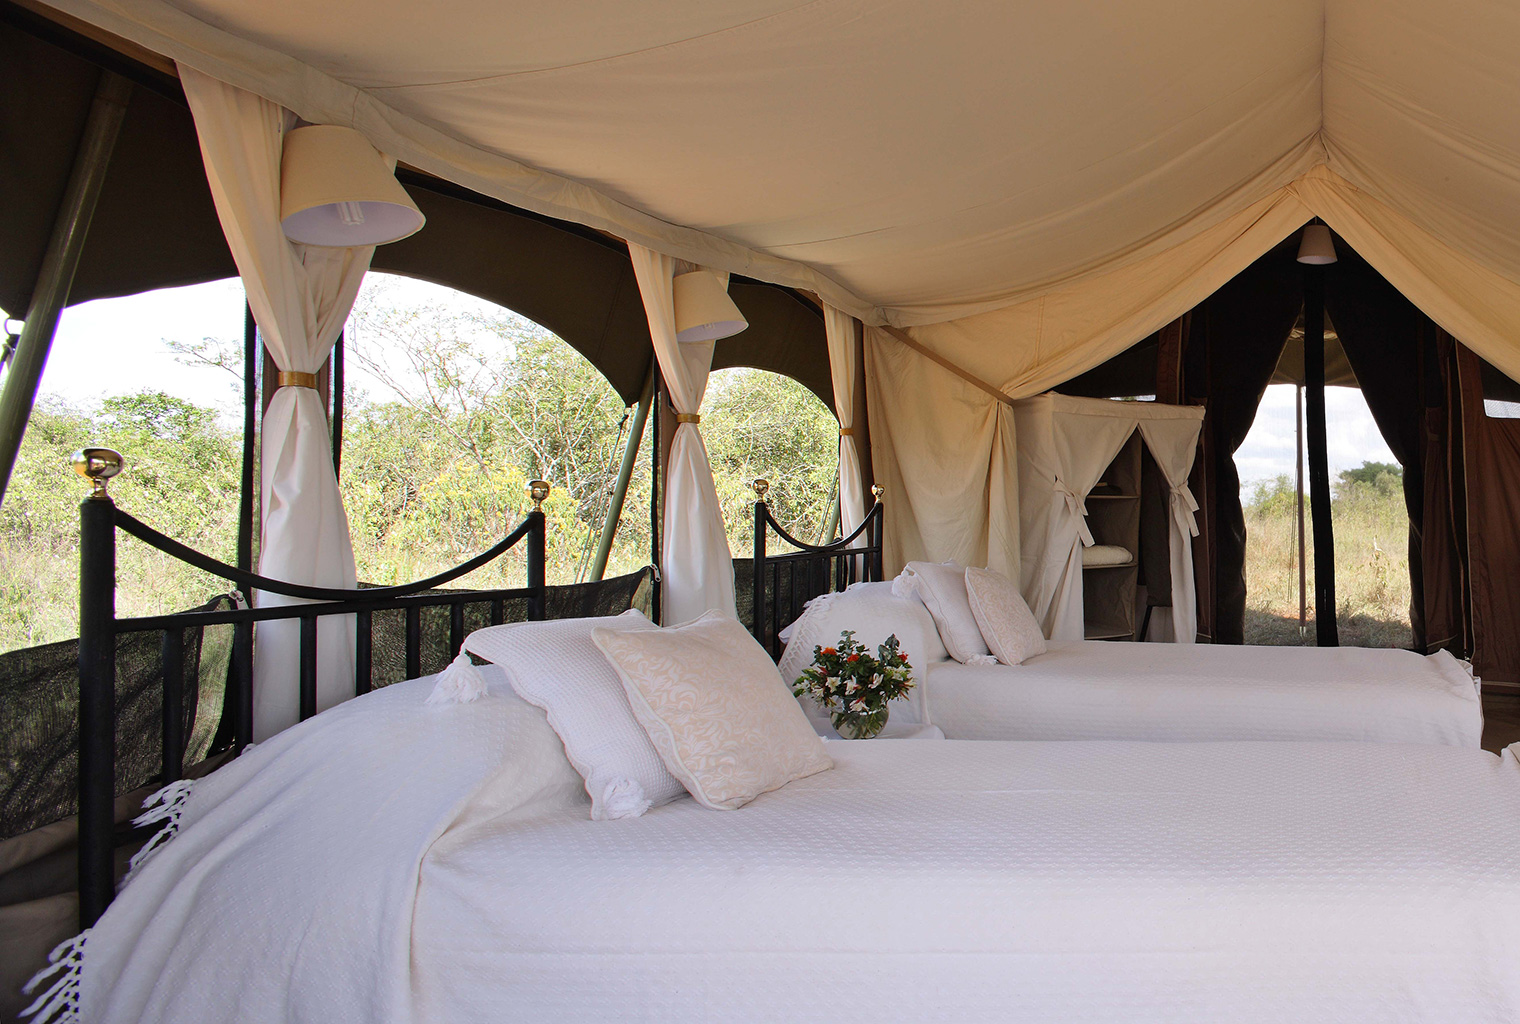 Lowis-and-Leakey-Kenya-Beds